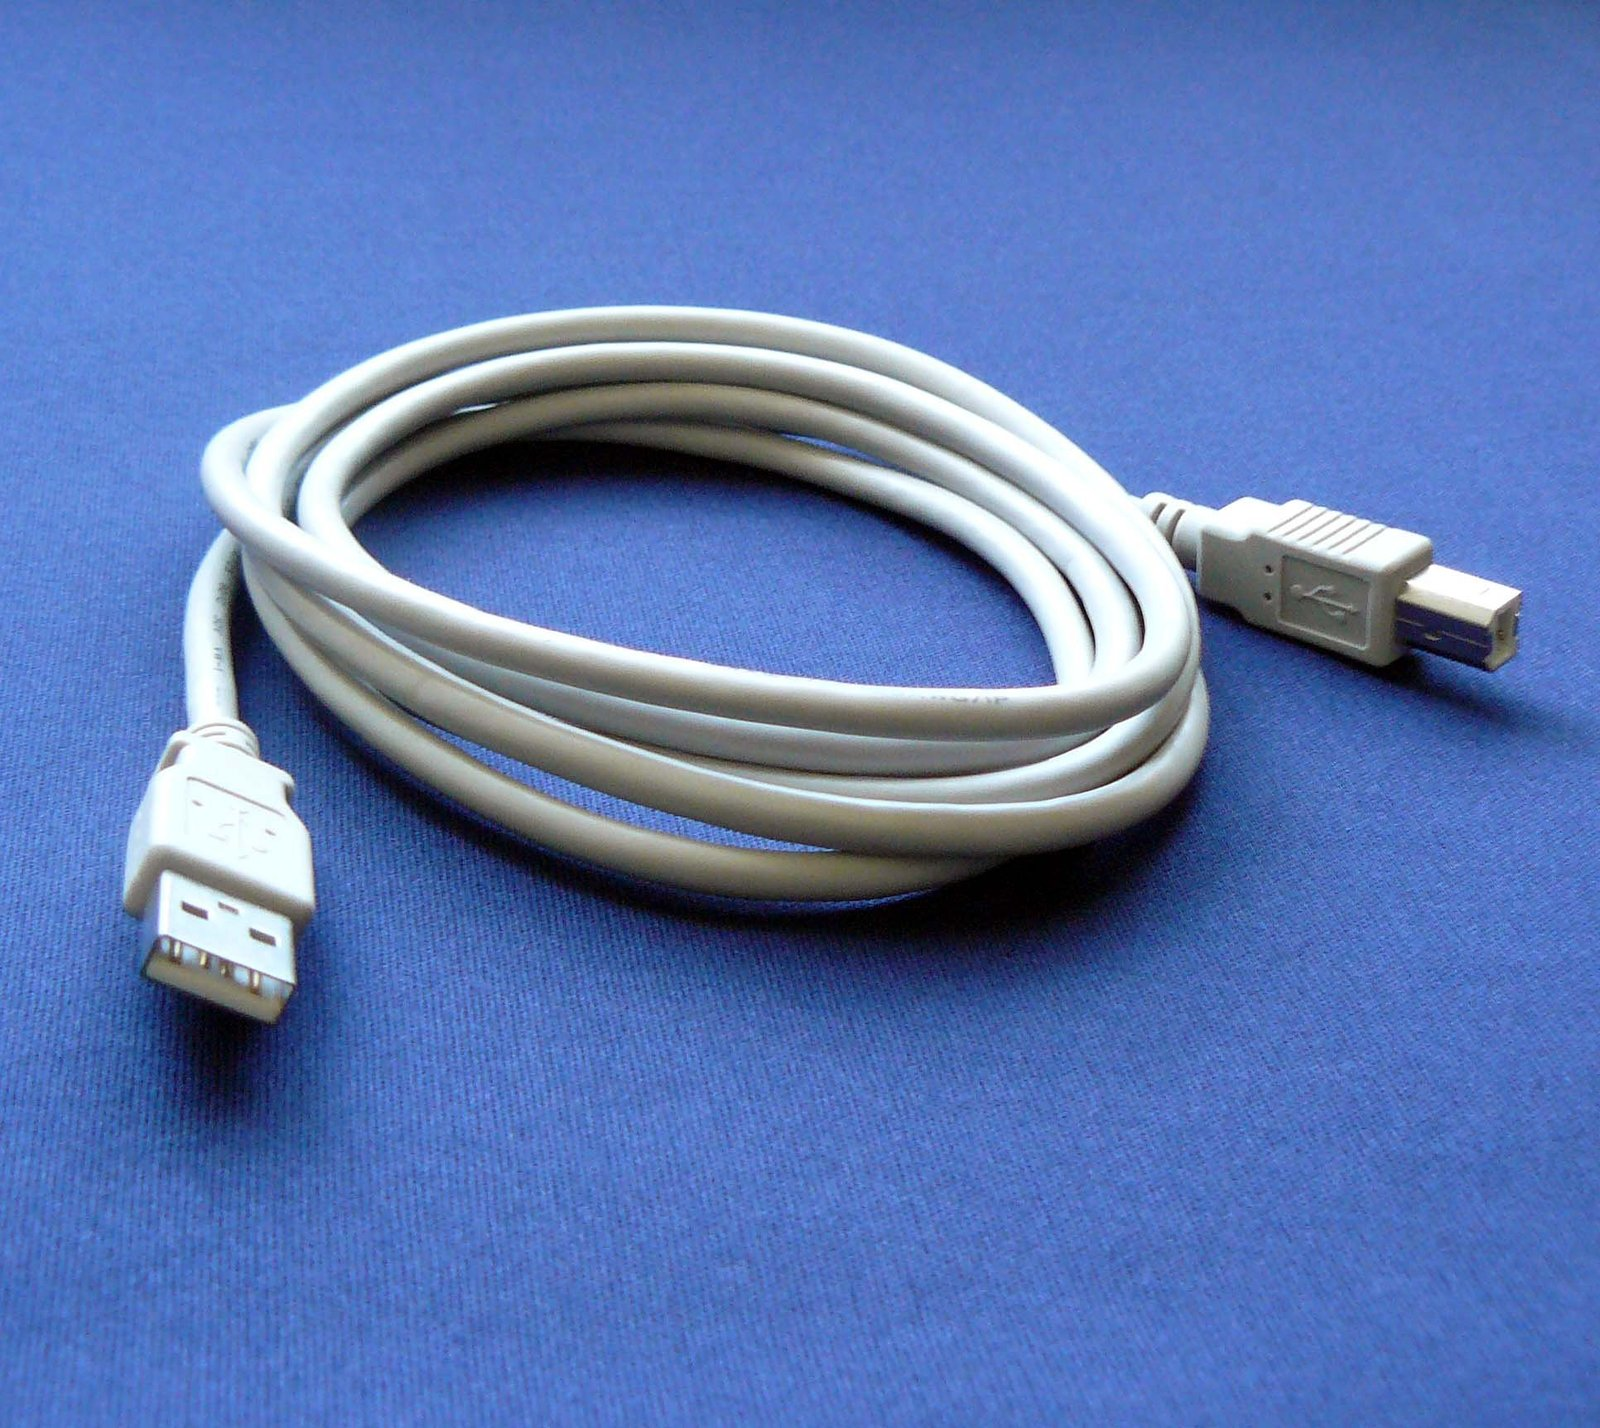 Primary image for Dell 948 Printer Compatible USB 2.0 Cable Cord for PC, Notebook, Macbook - 6 ...